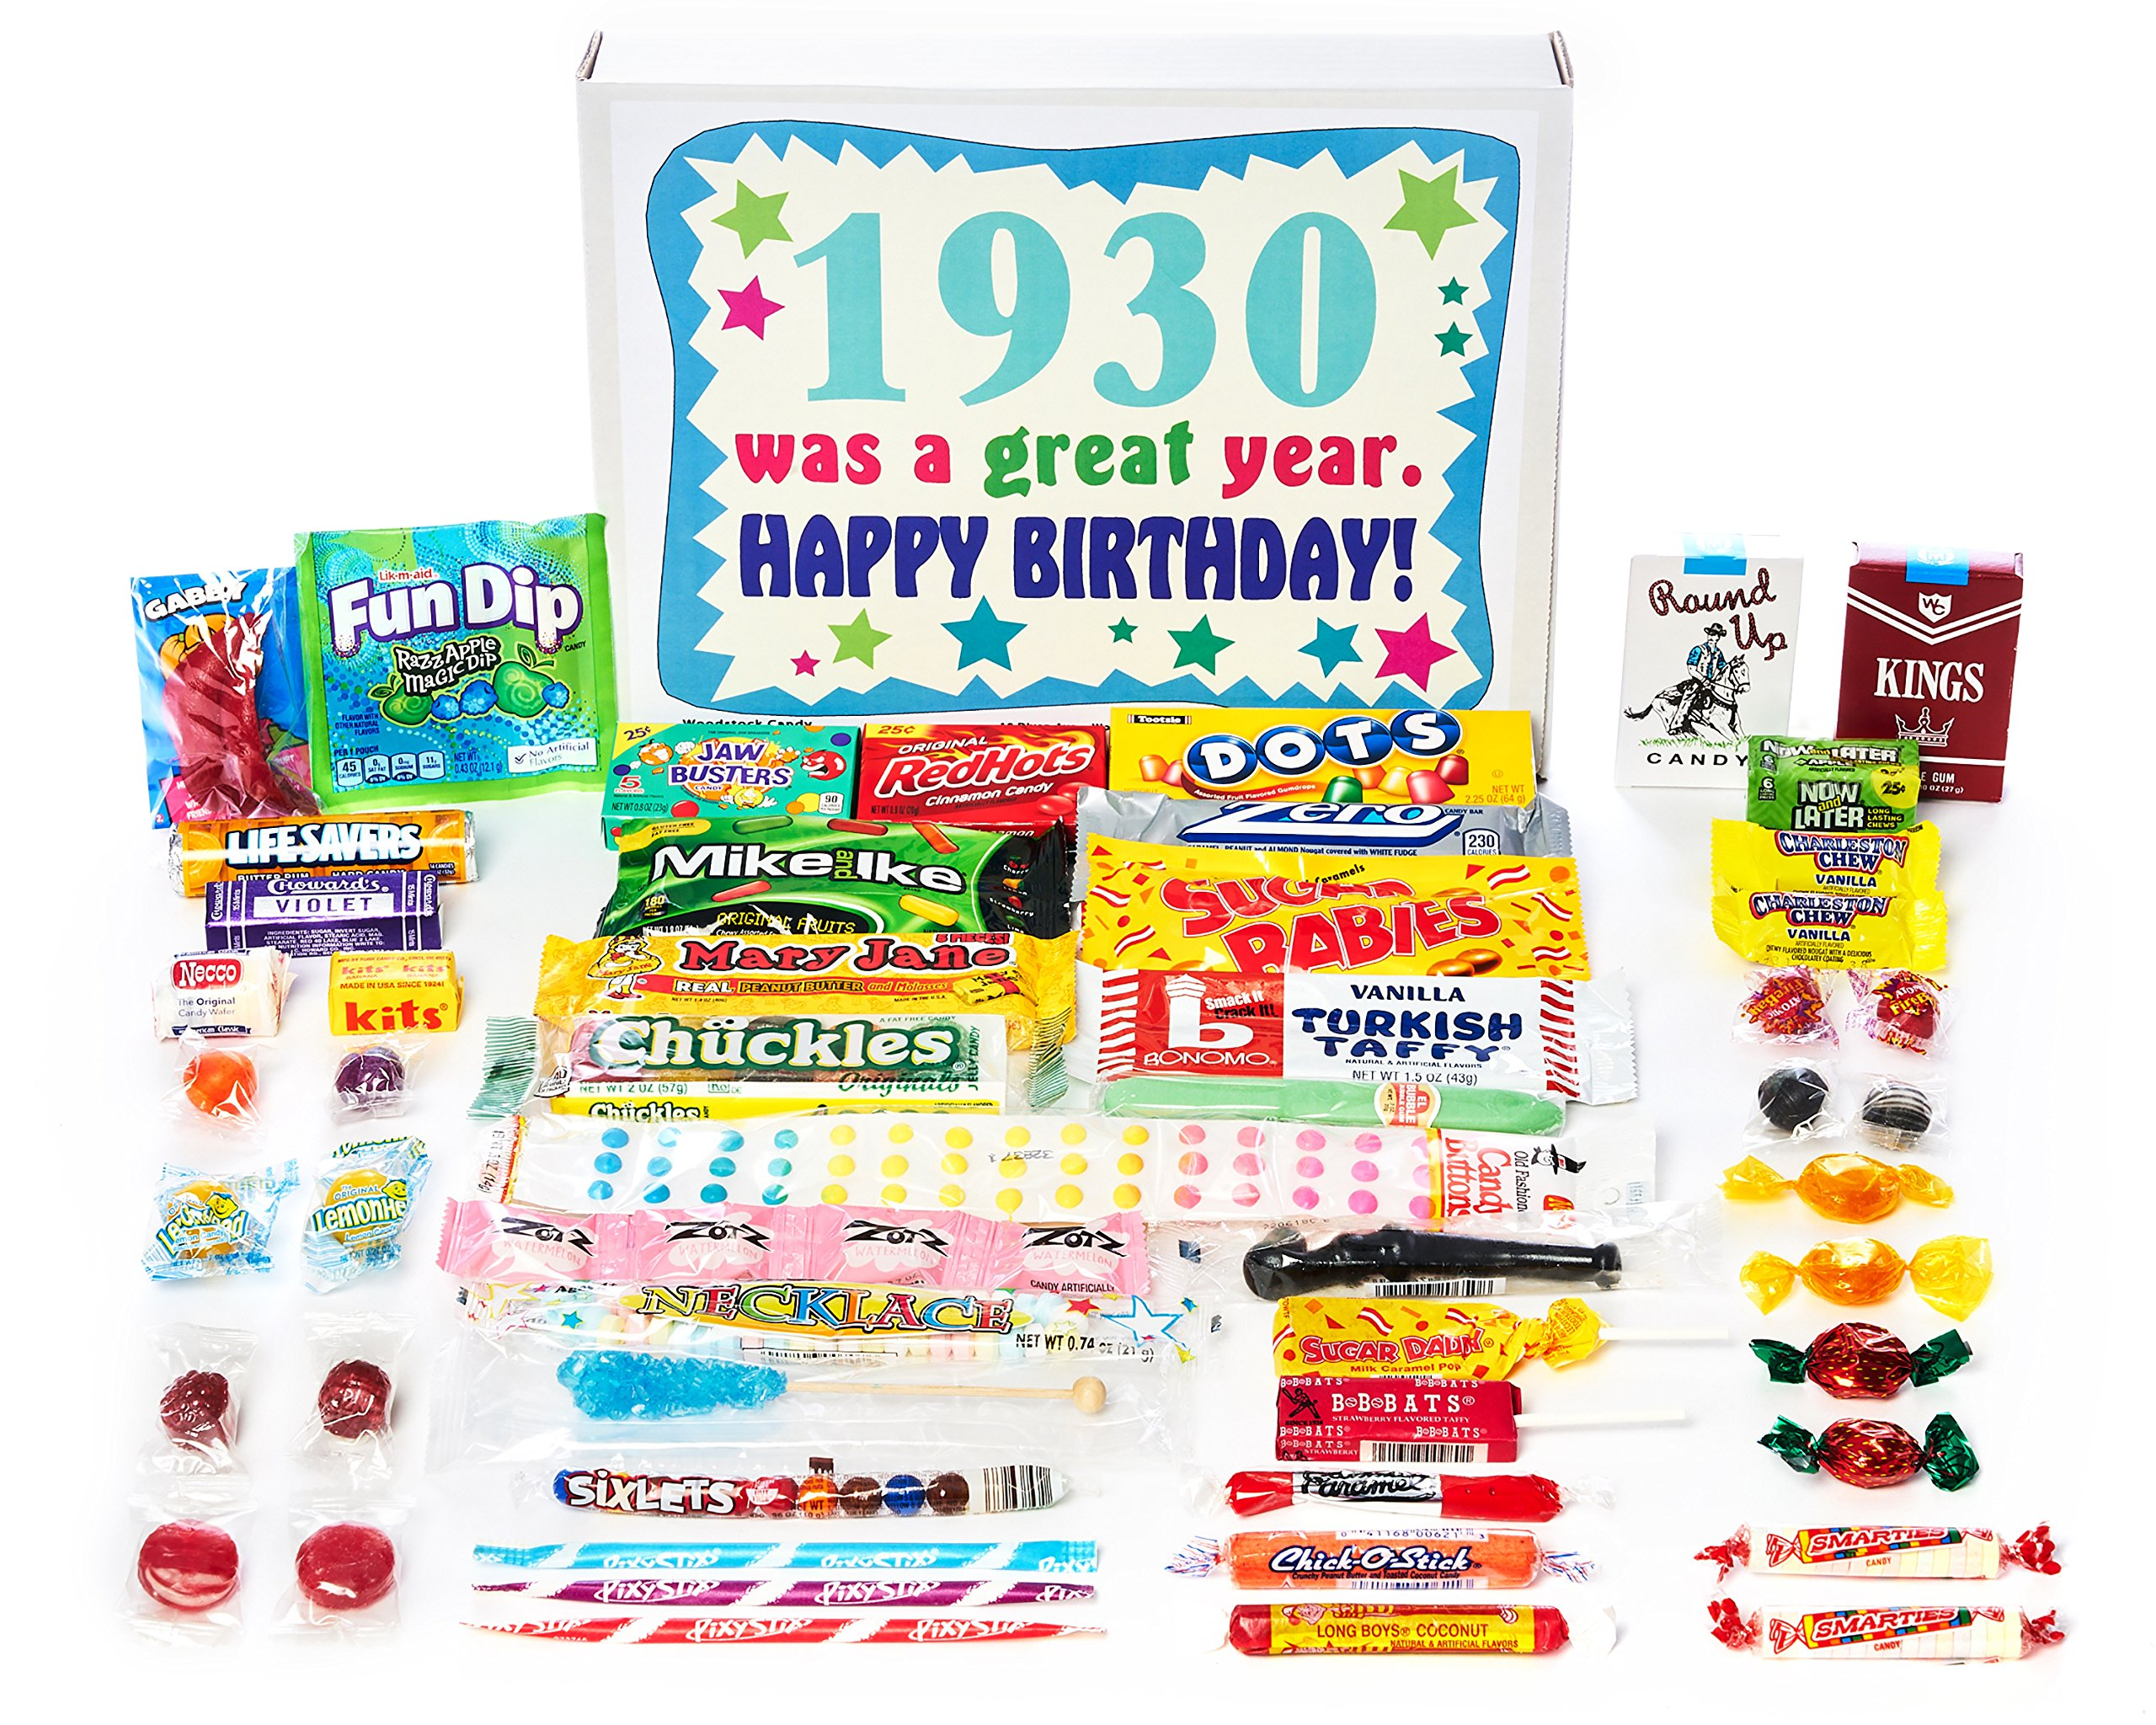 Woodstock Candy ~ 1930 89th Birthday Gift Box of Nostalgic Retro Candy from Childhood for 89 Year Old Man or Woman Born 1930 by Woodstock Candy